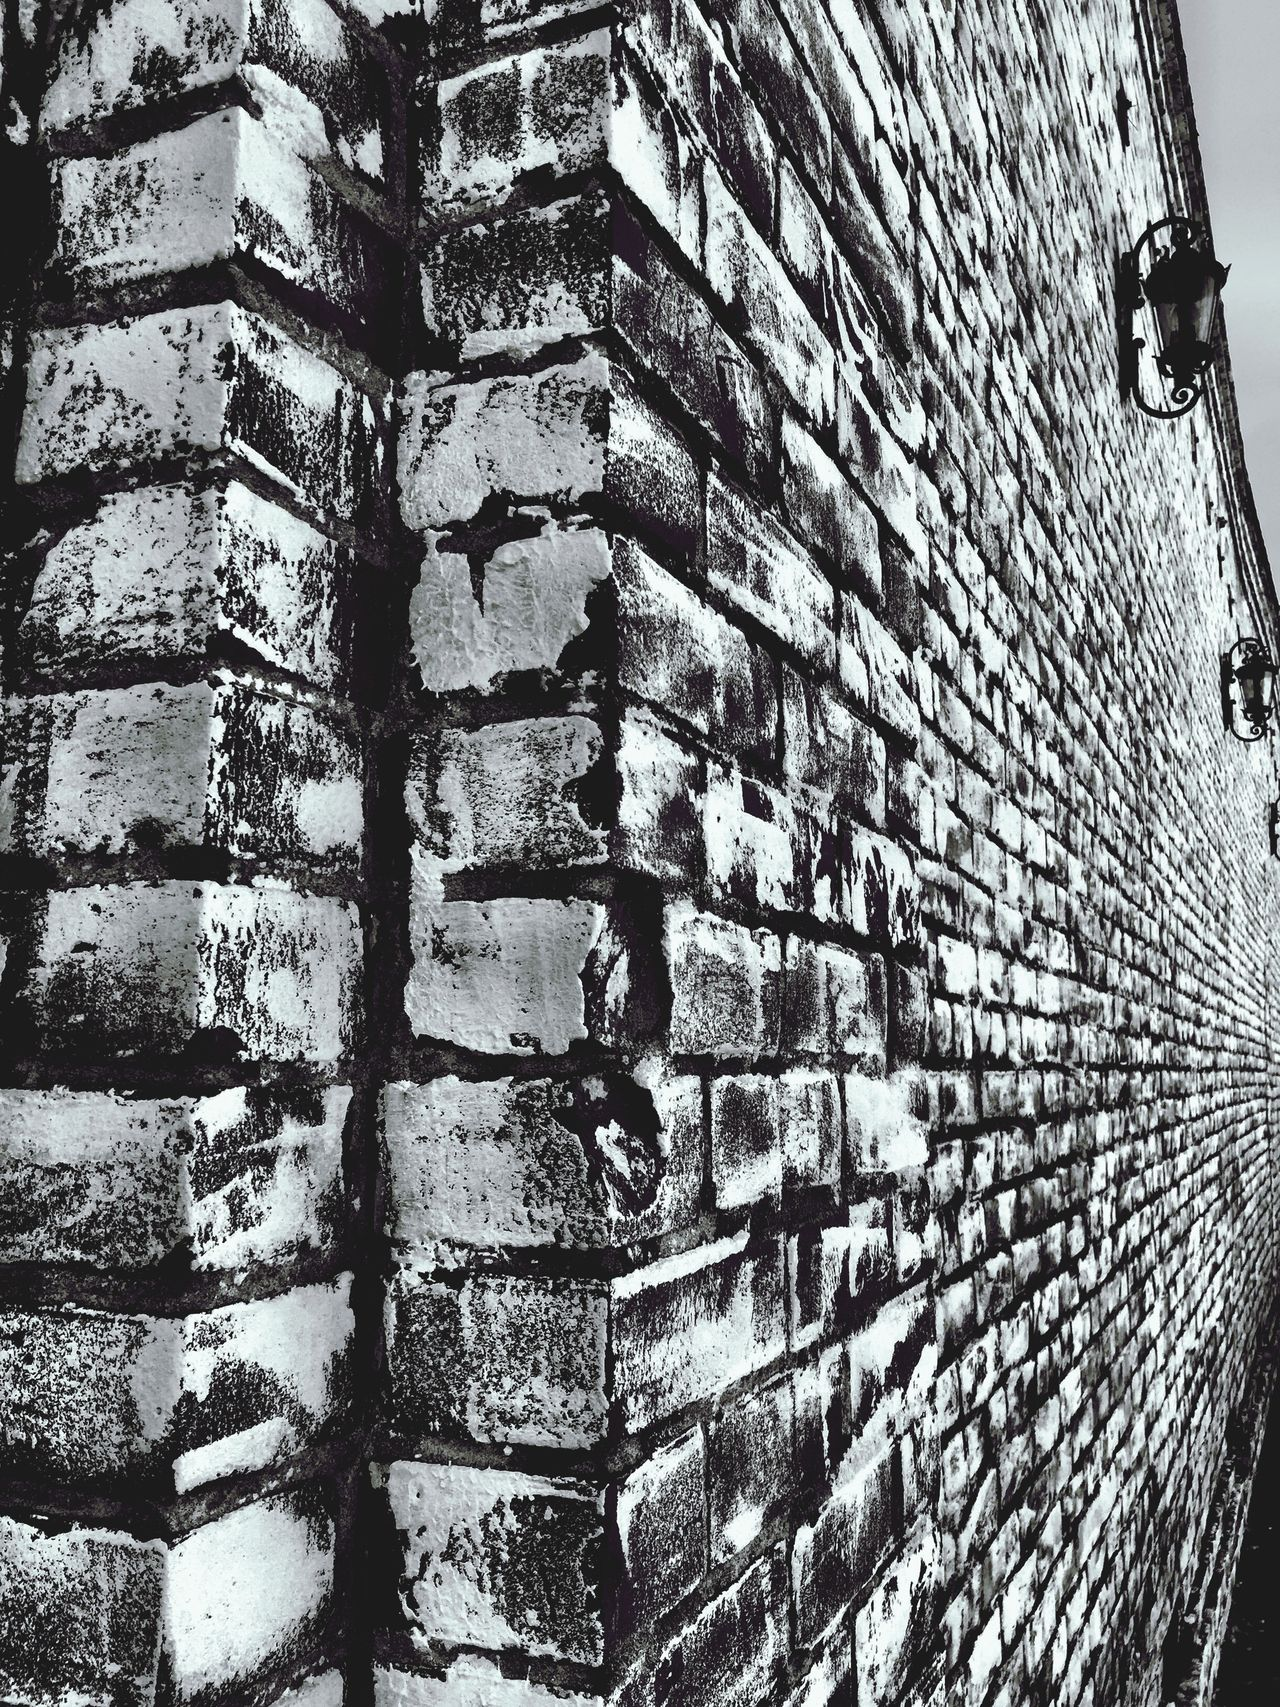 """Infinite Brick"" Brick Bricks Brick Wall Brickporn Brick Building Blackandwhite Black And White Black & White Blackandwhite Photography"